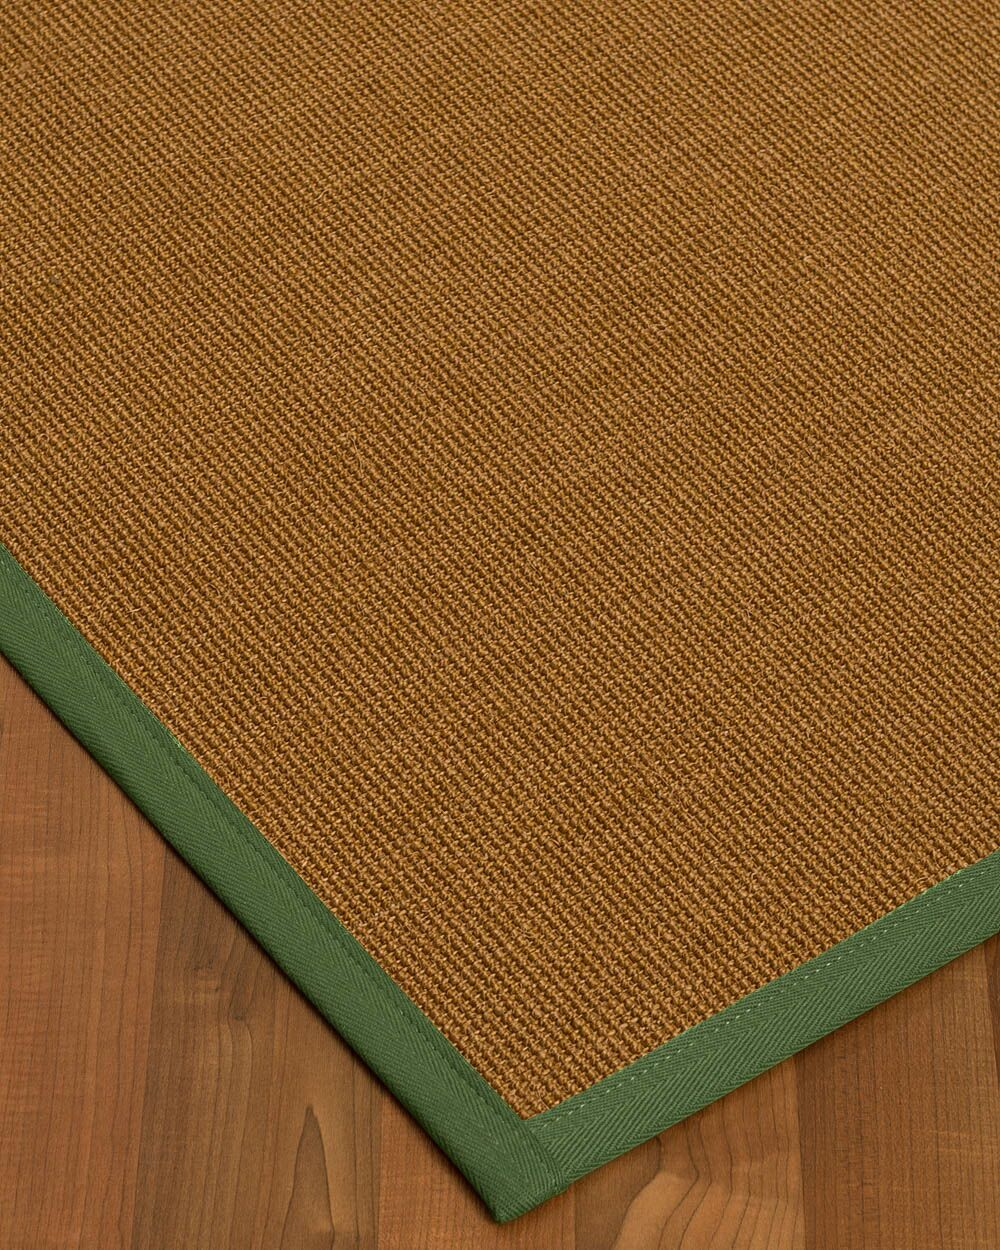 Antonina Border Hand-Woven Brown/Green Area Rug Rug Size: Rectangle 12' x 15', Rug Pad Included: Yes